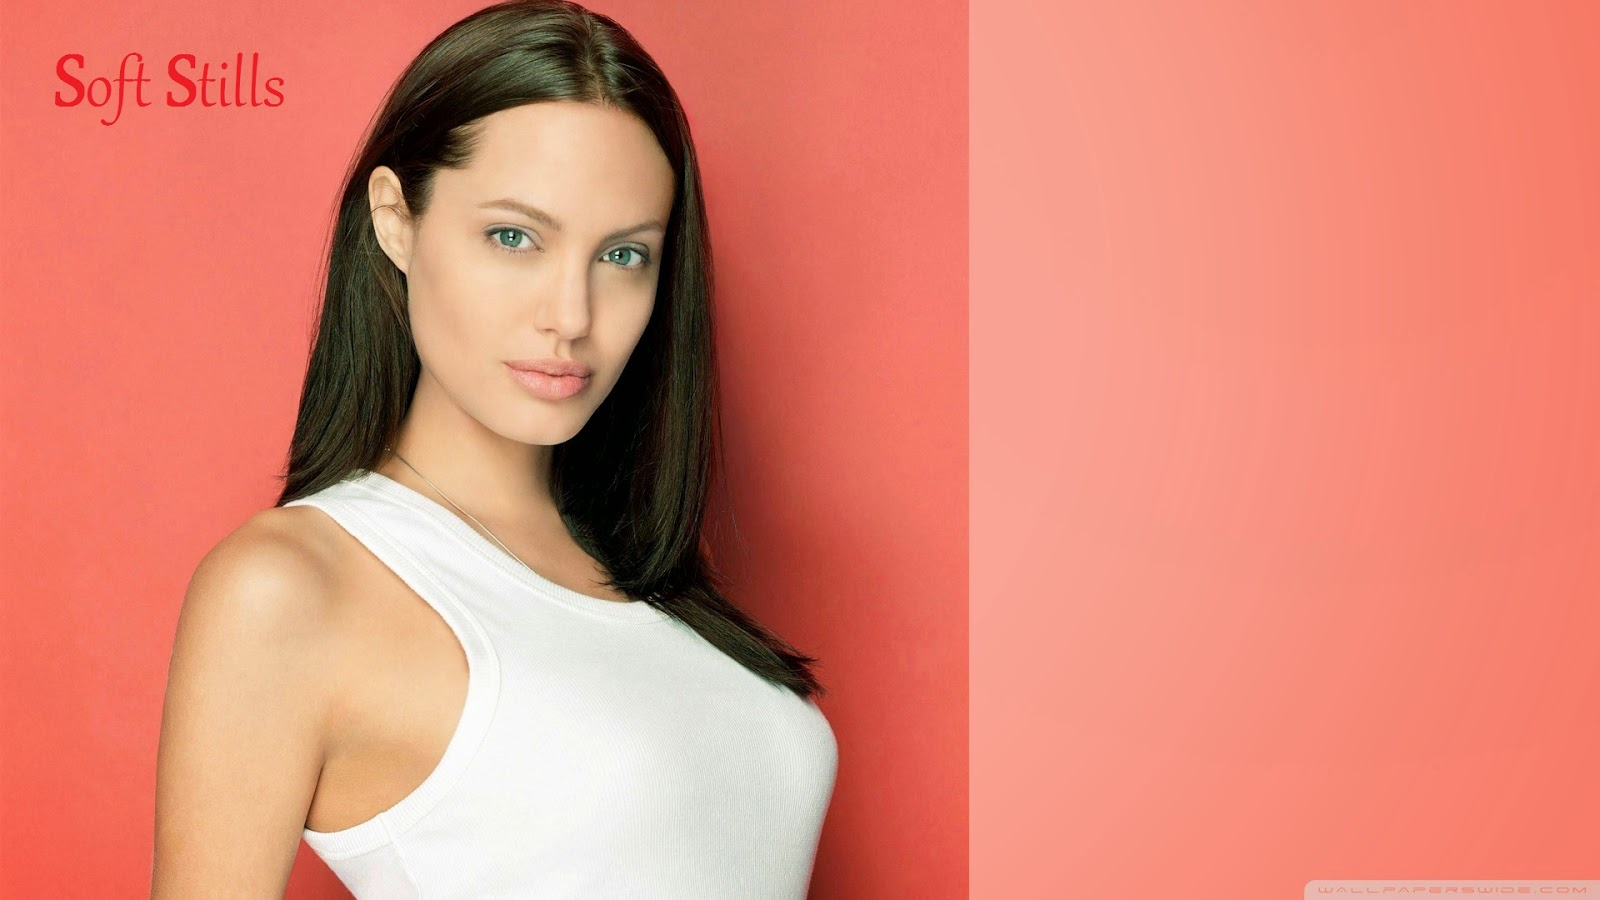 Angelina Jolie - WallpapersWide